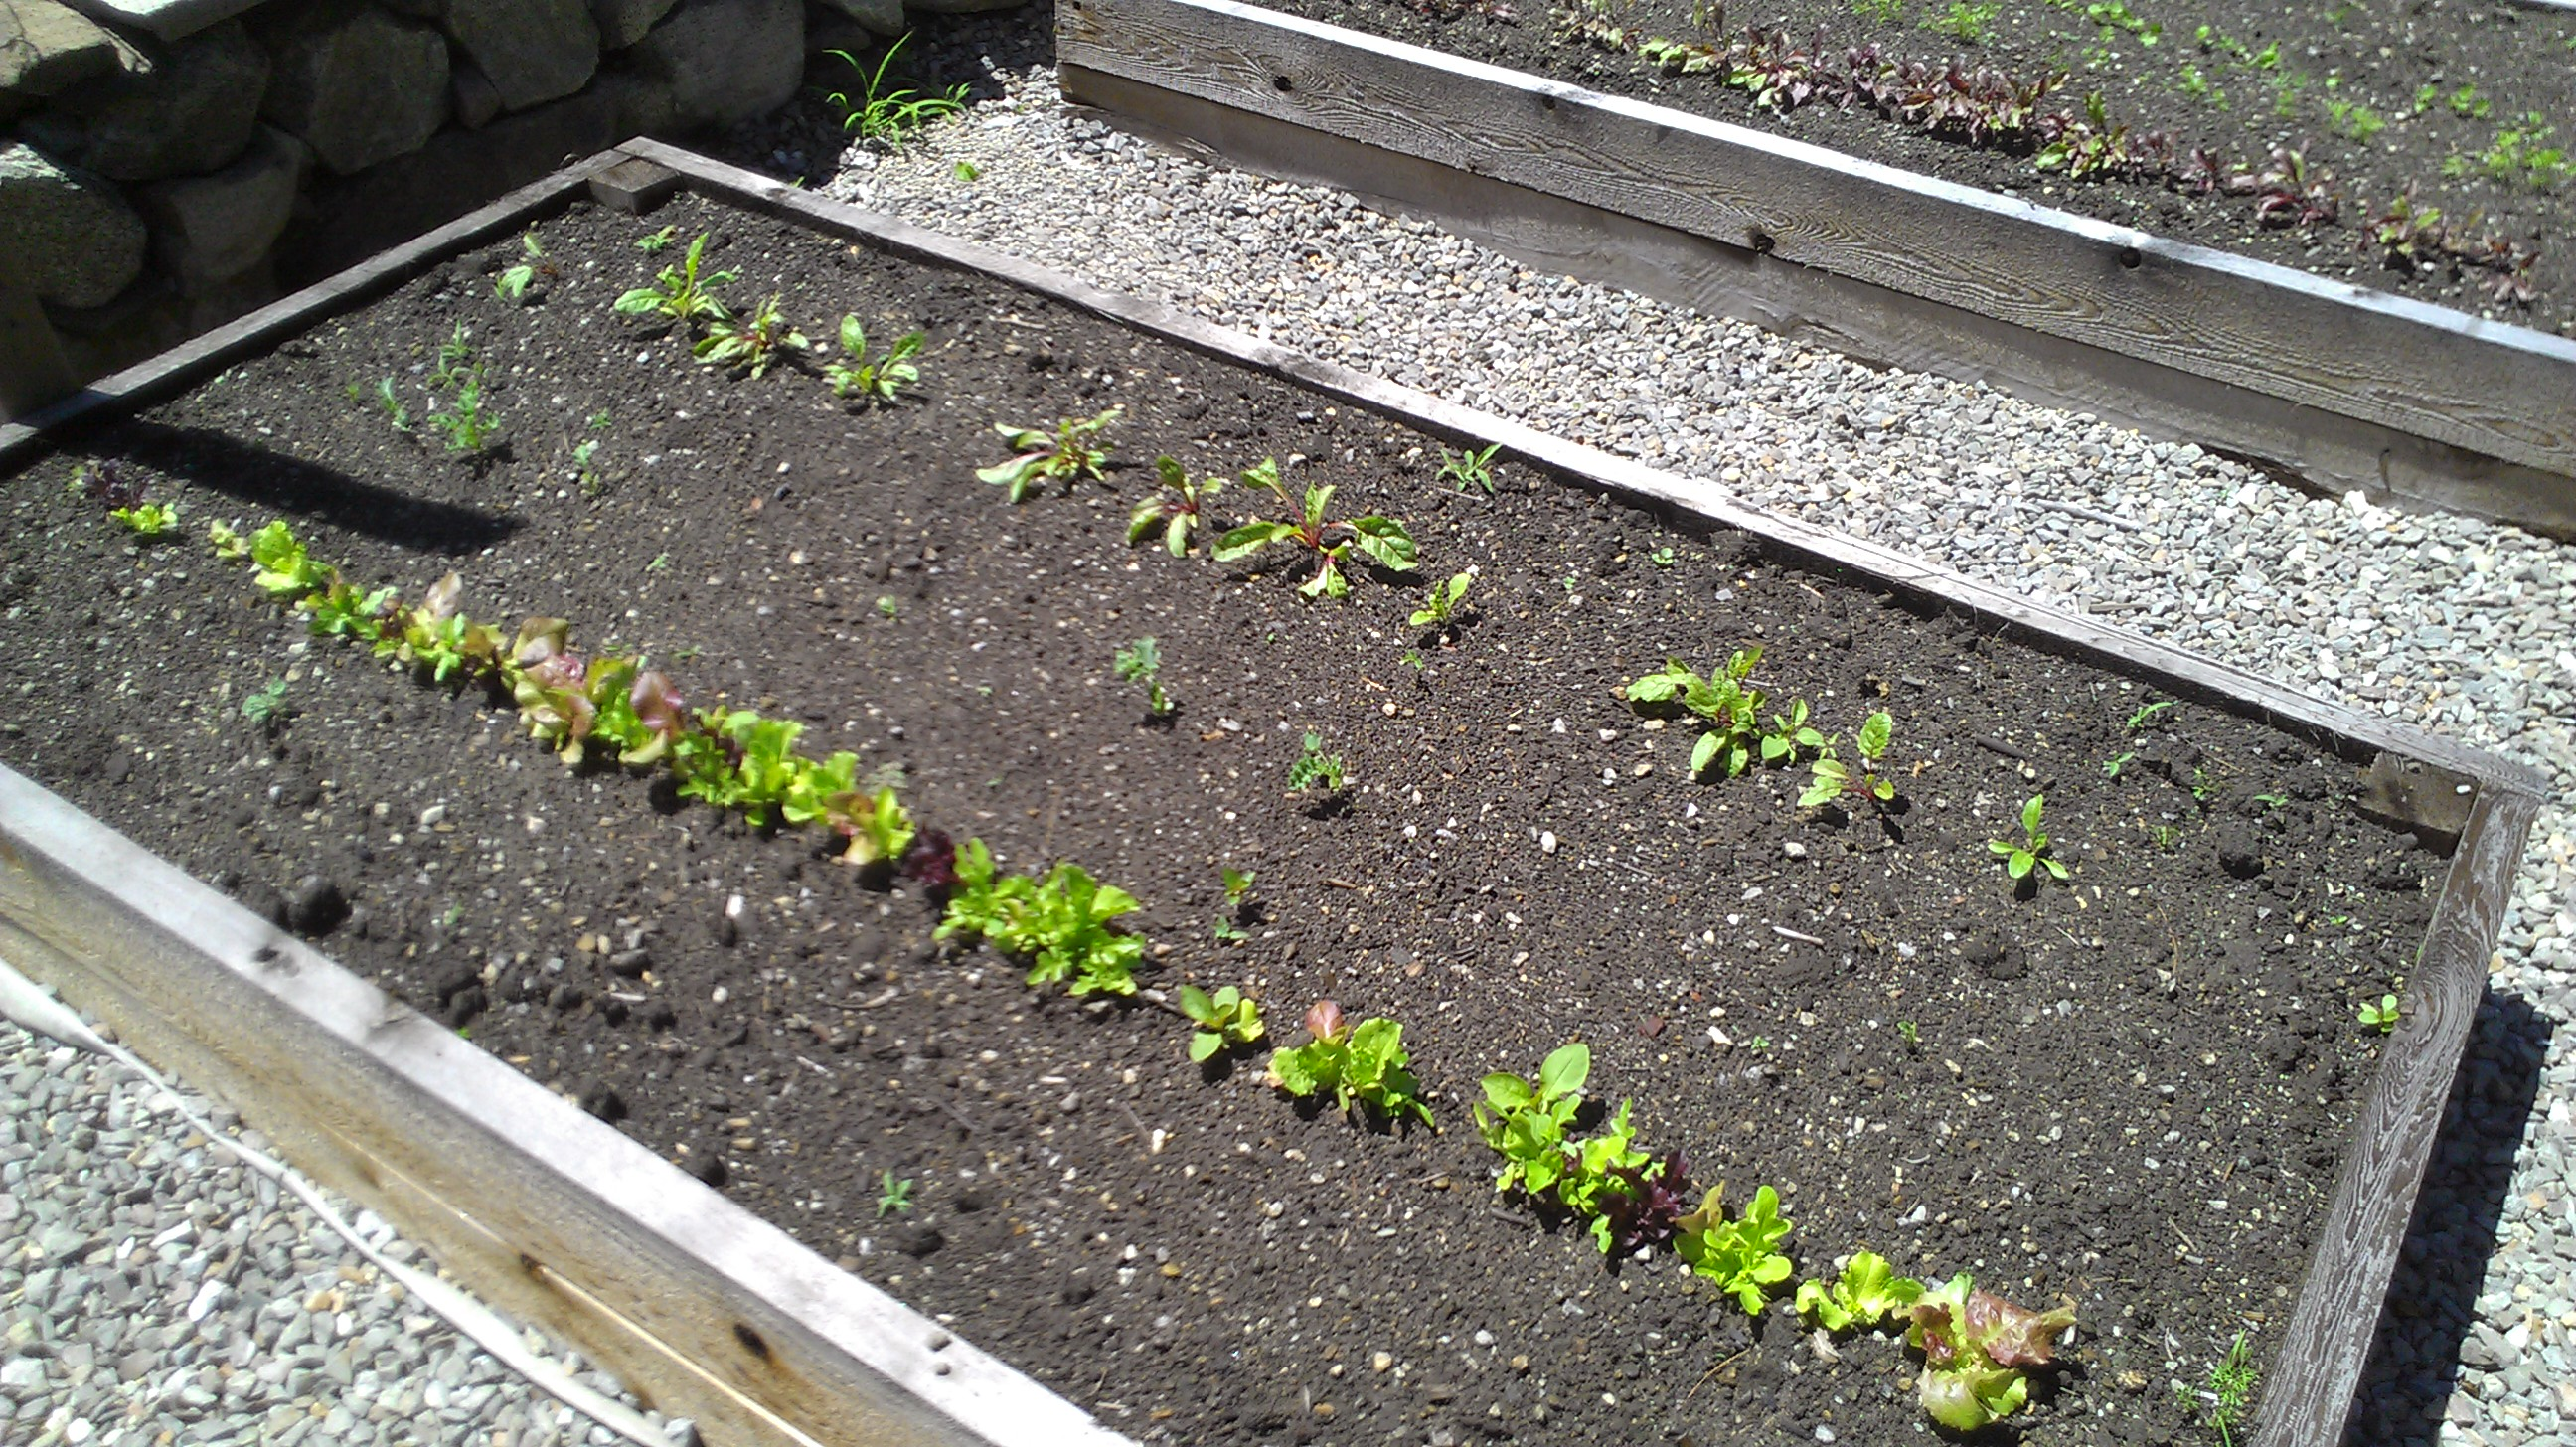 Chard, kale and lettuce